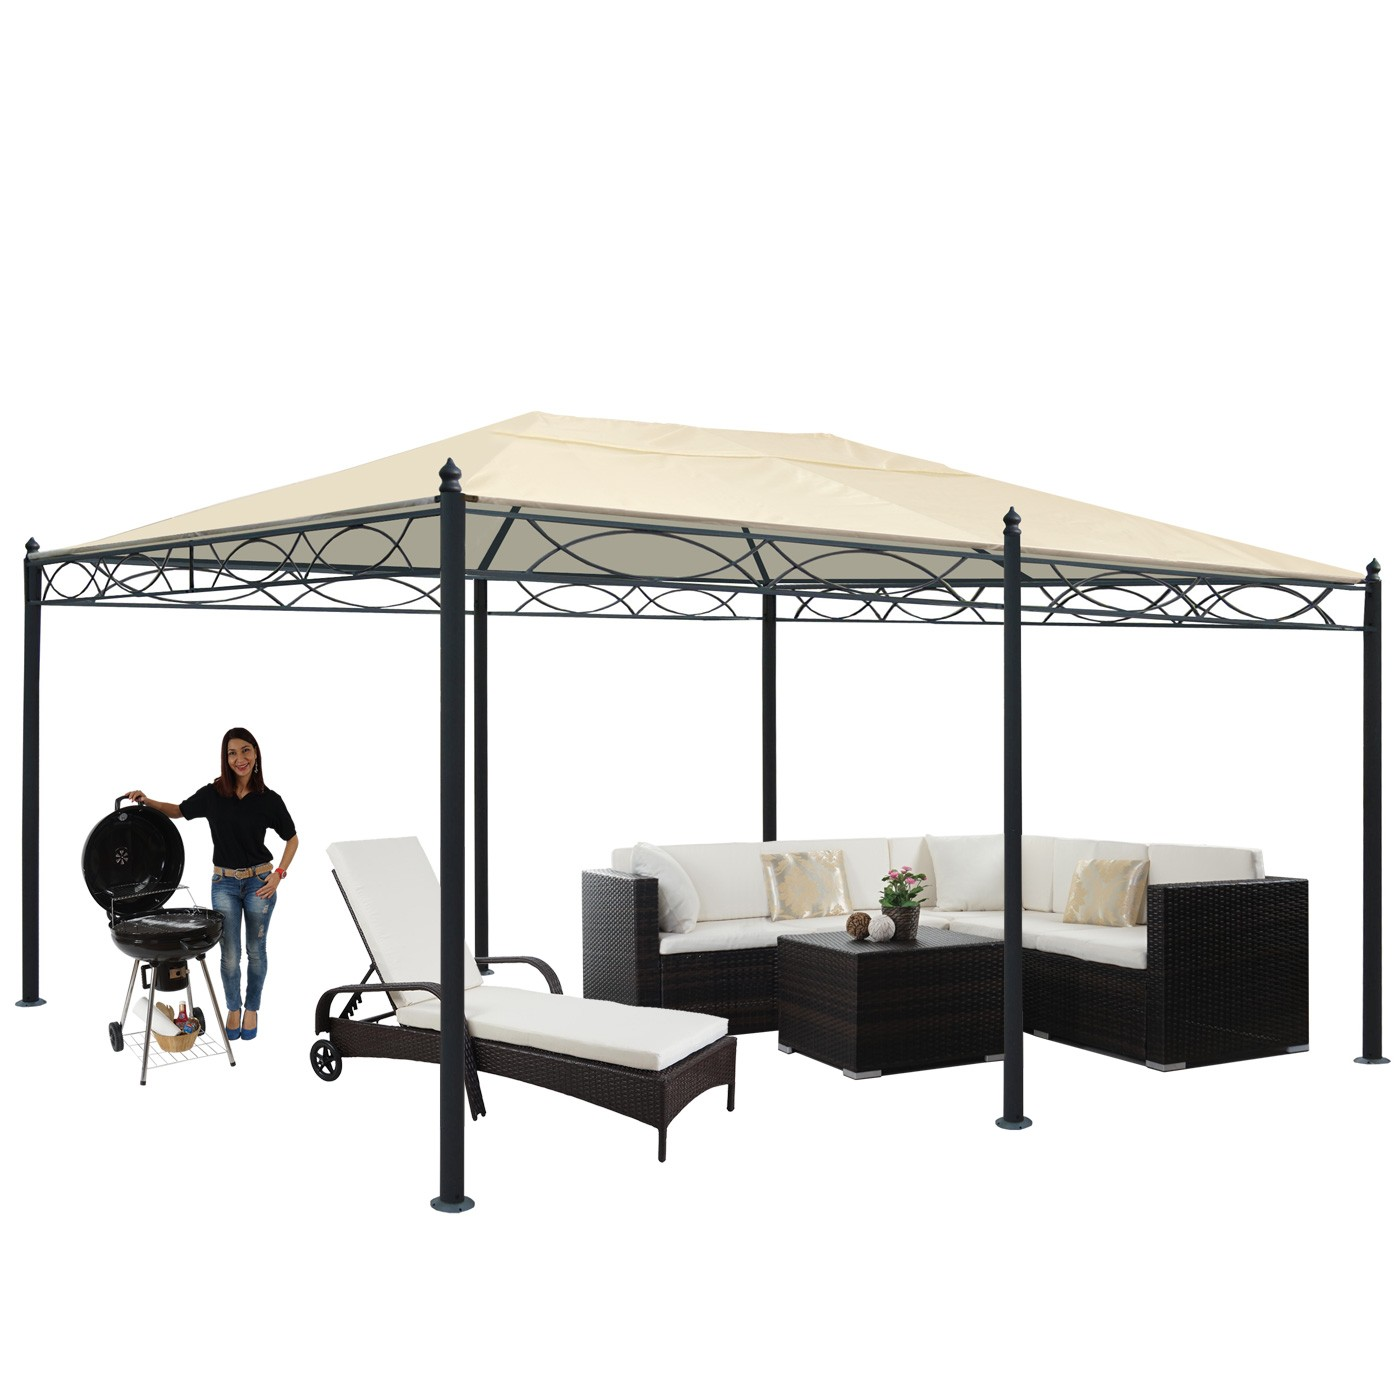 pergola cadiz garten pavillon stabiles 7cm gestell 5x3m. Black Bedroom Furniture Sets. Home Design Ideas